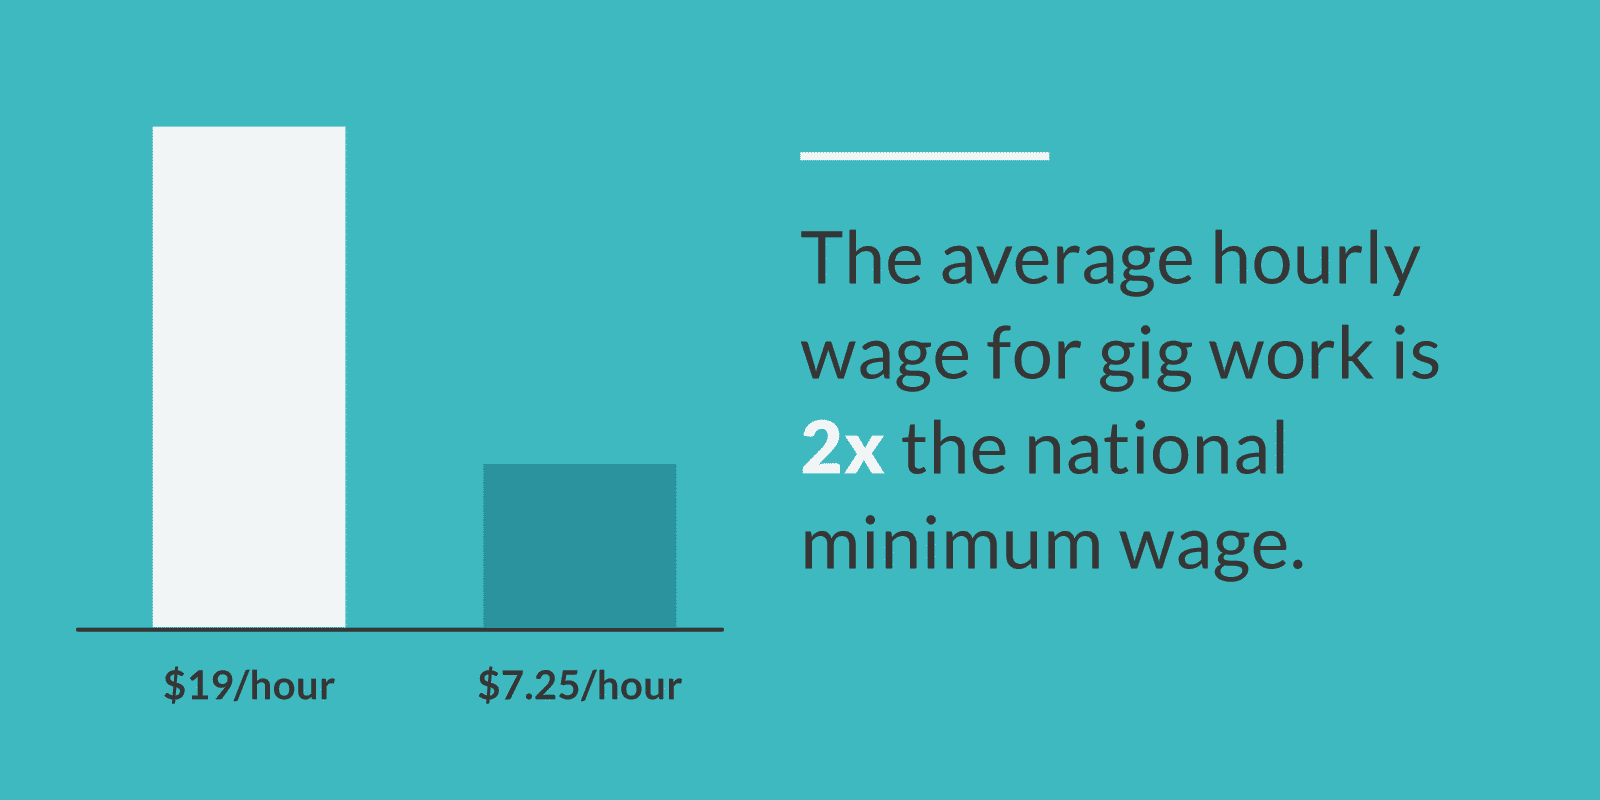 The average wage for gig workers is 2x the national minimum wage.